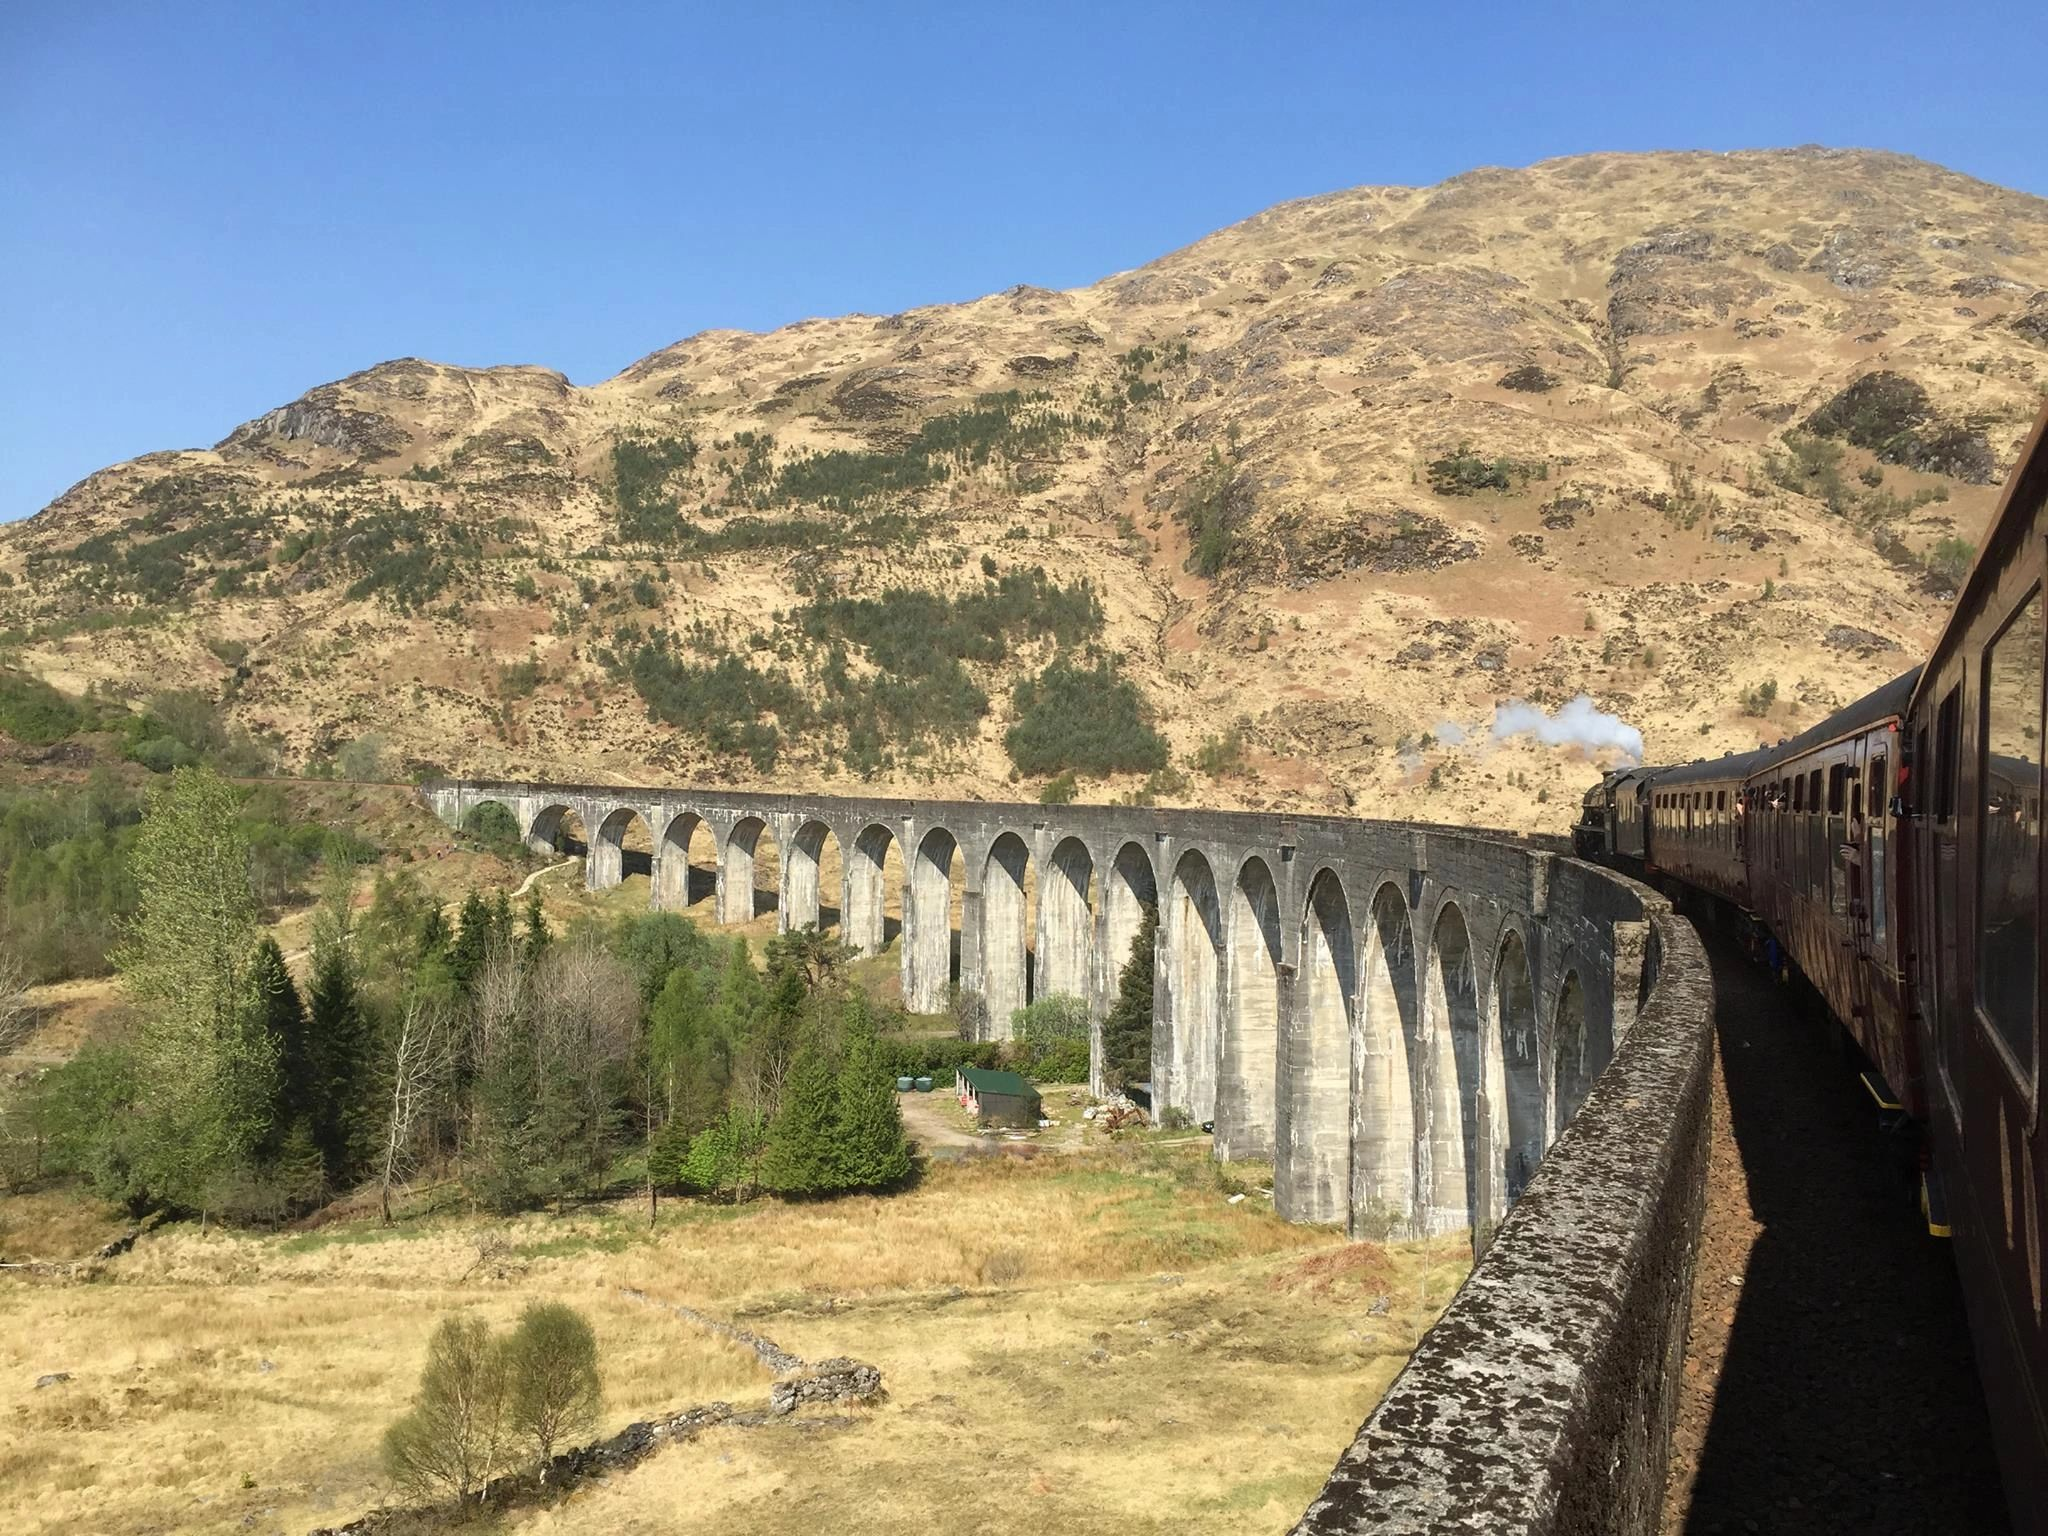 The jacobite Steam Train travelling over Glenfinnan Viaduct or harry Potter bridge and blue skies